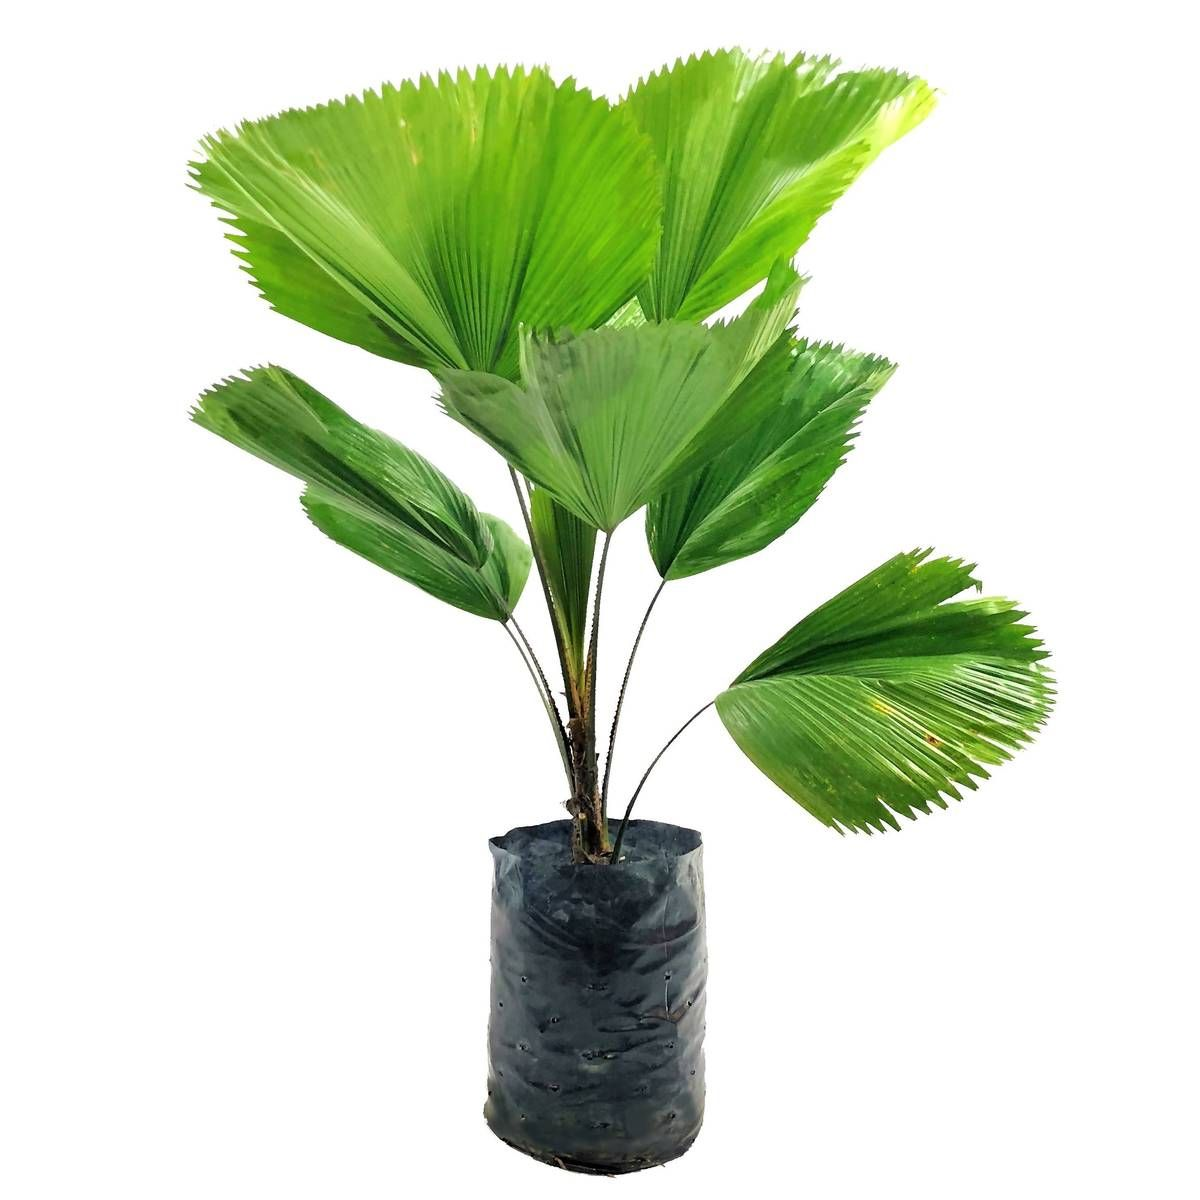 House Plants For Shady Rooms: Licuala Grandis, Ruffled Fan Palm (1.0m)